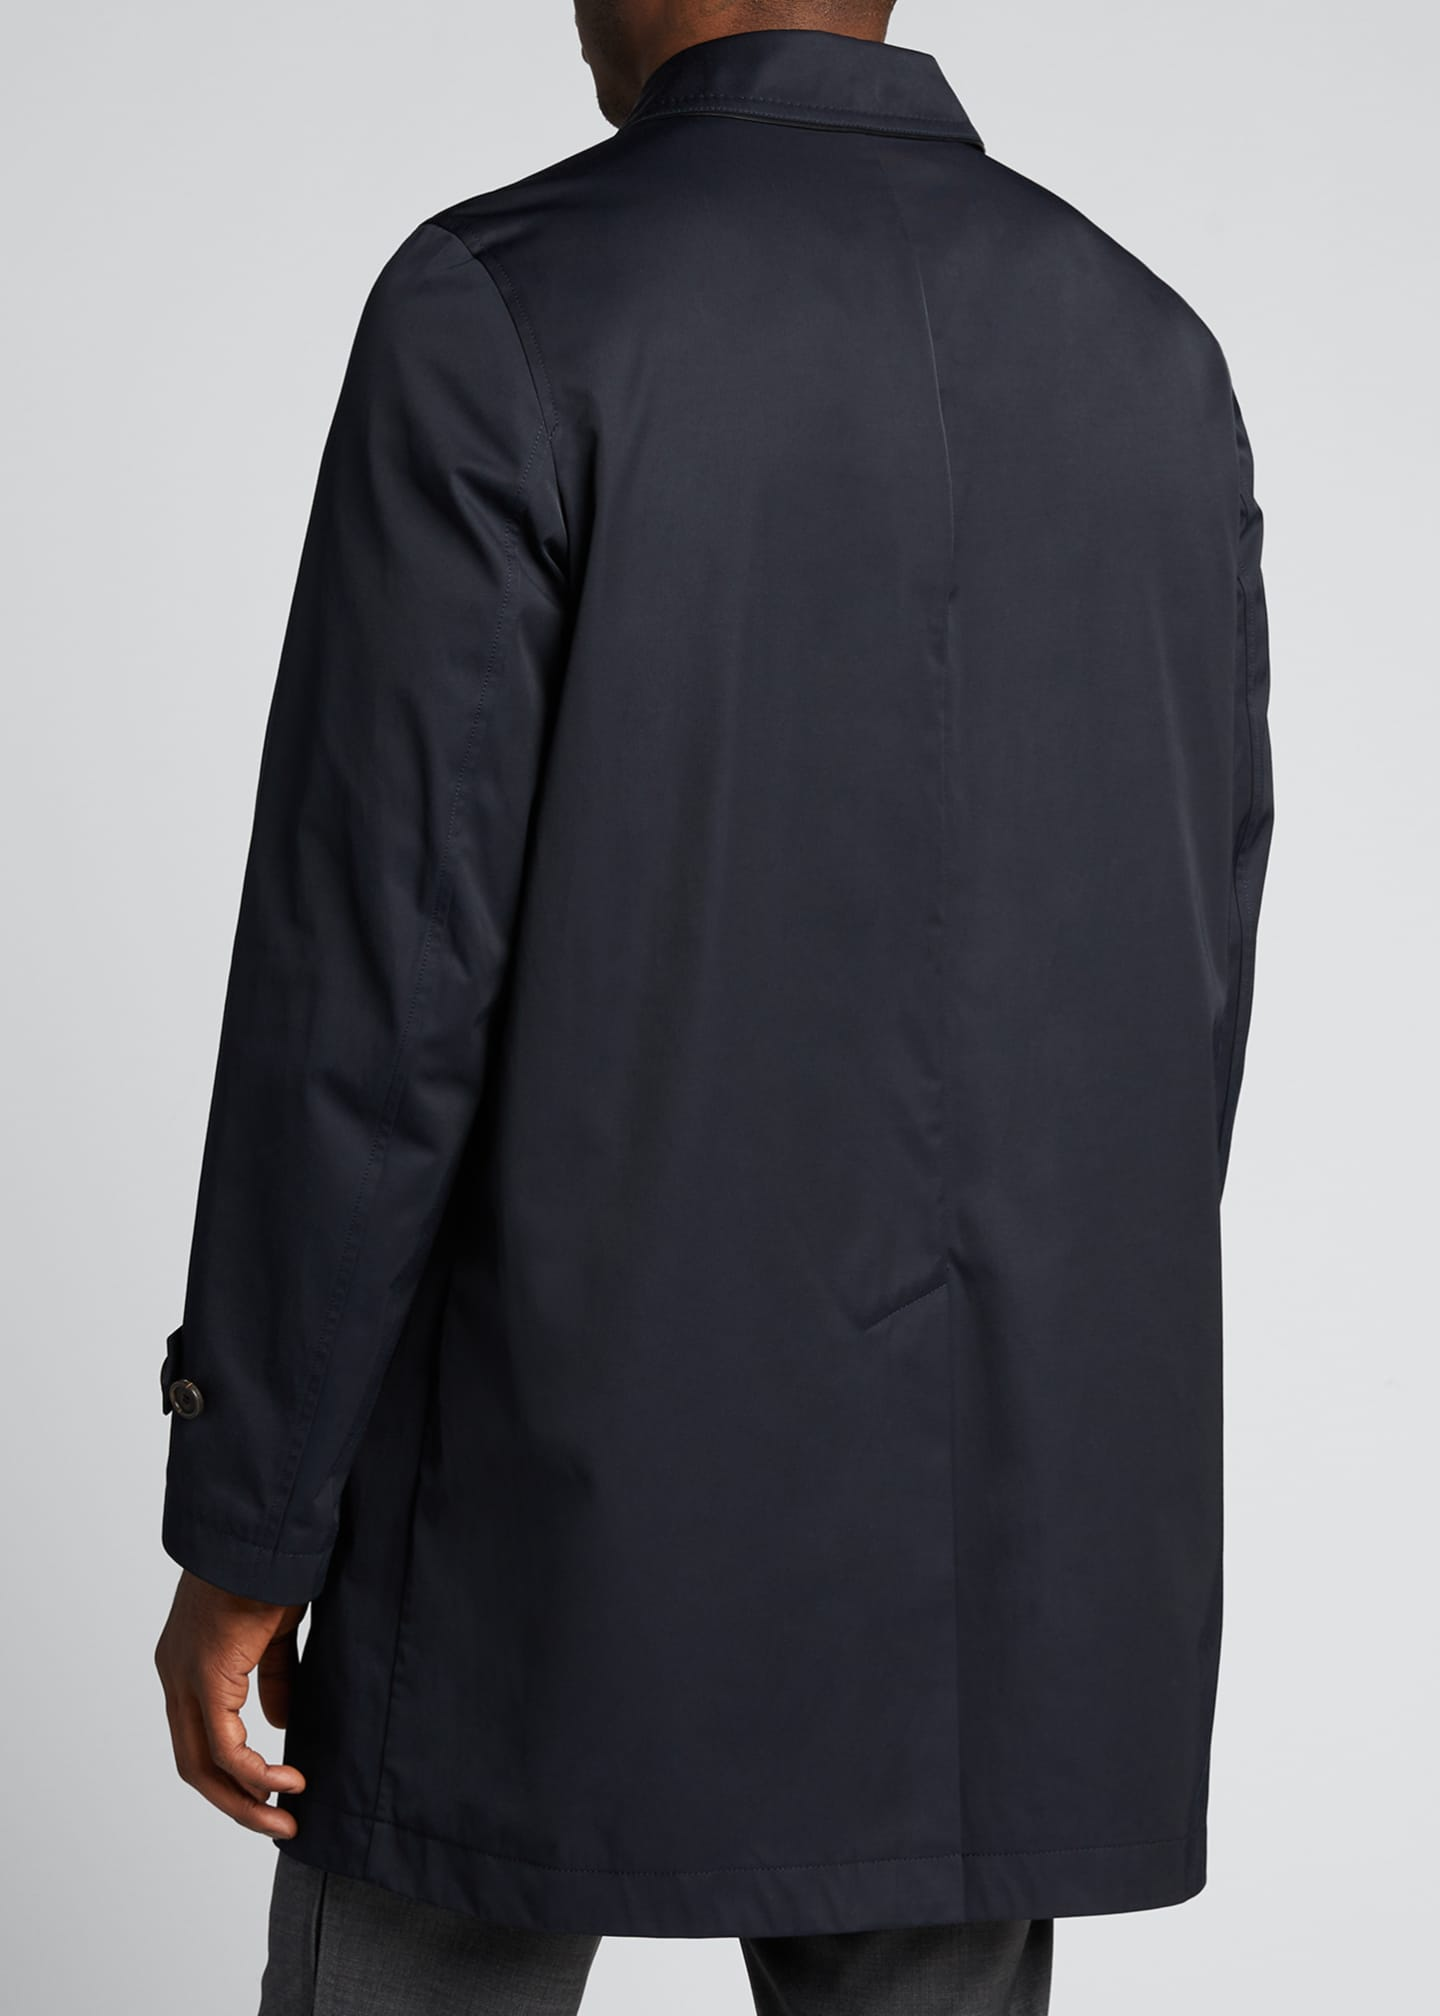 Image 2 of 5: Men's Trench Coat